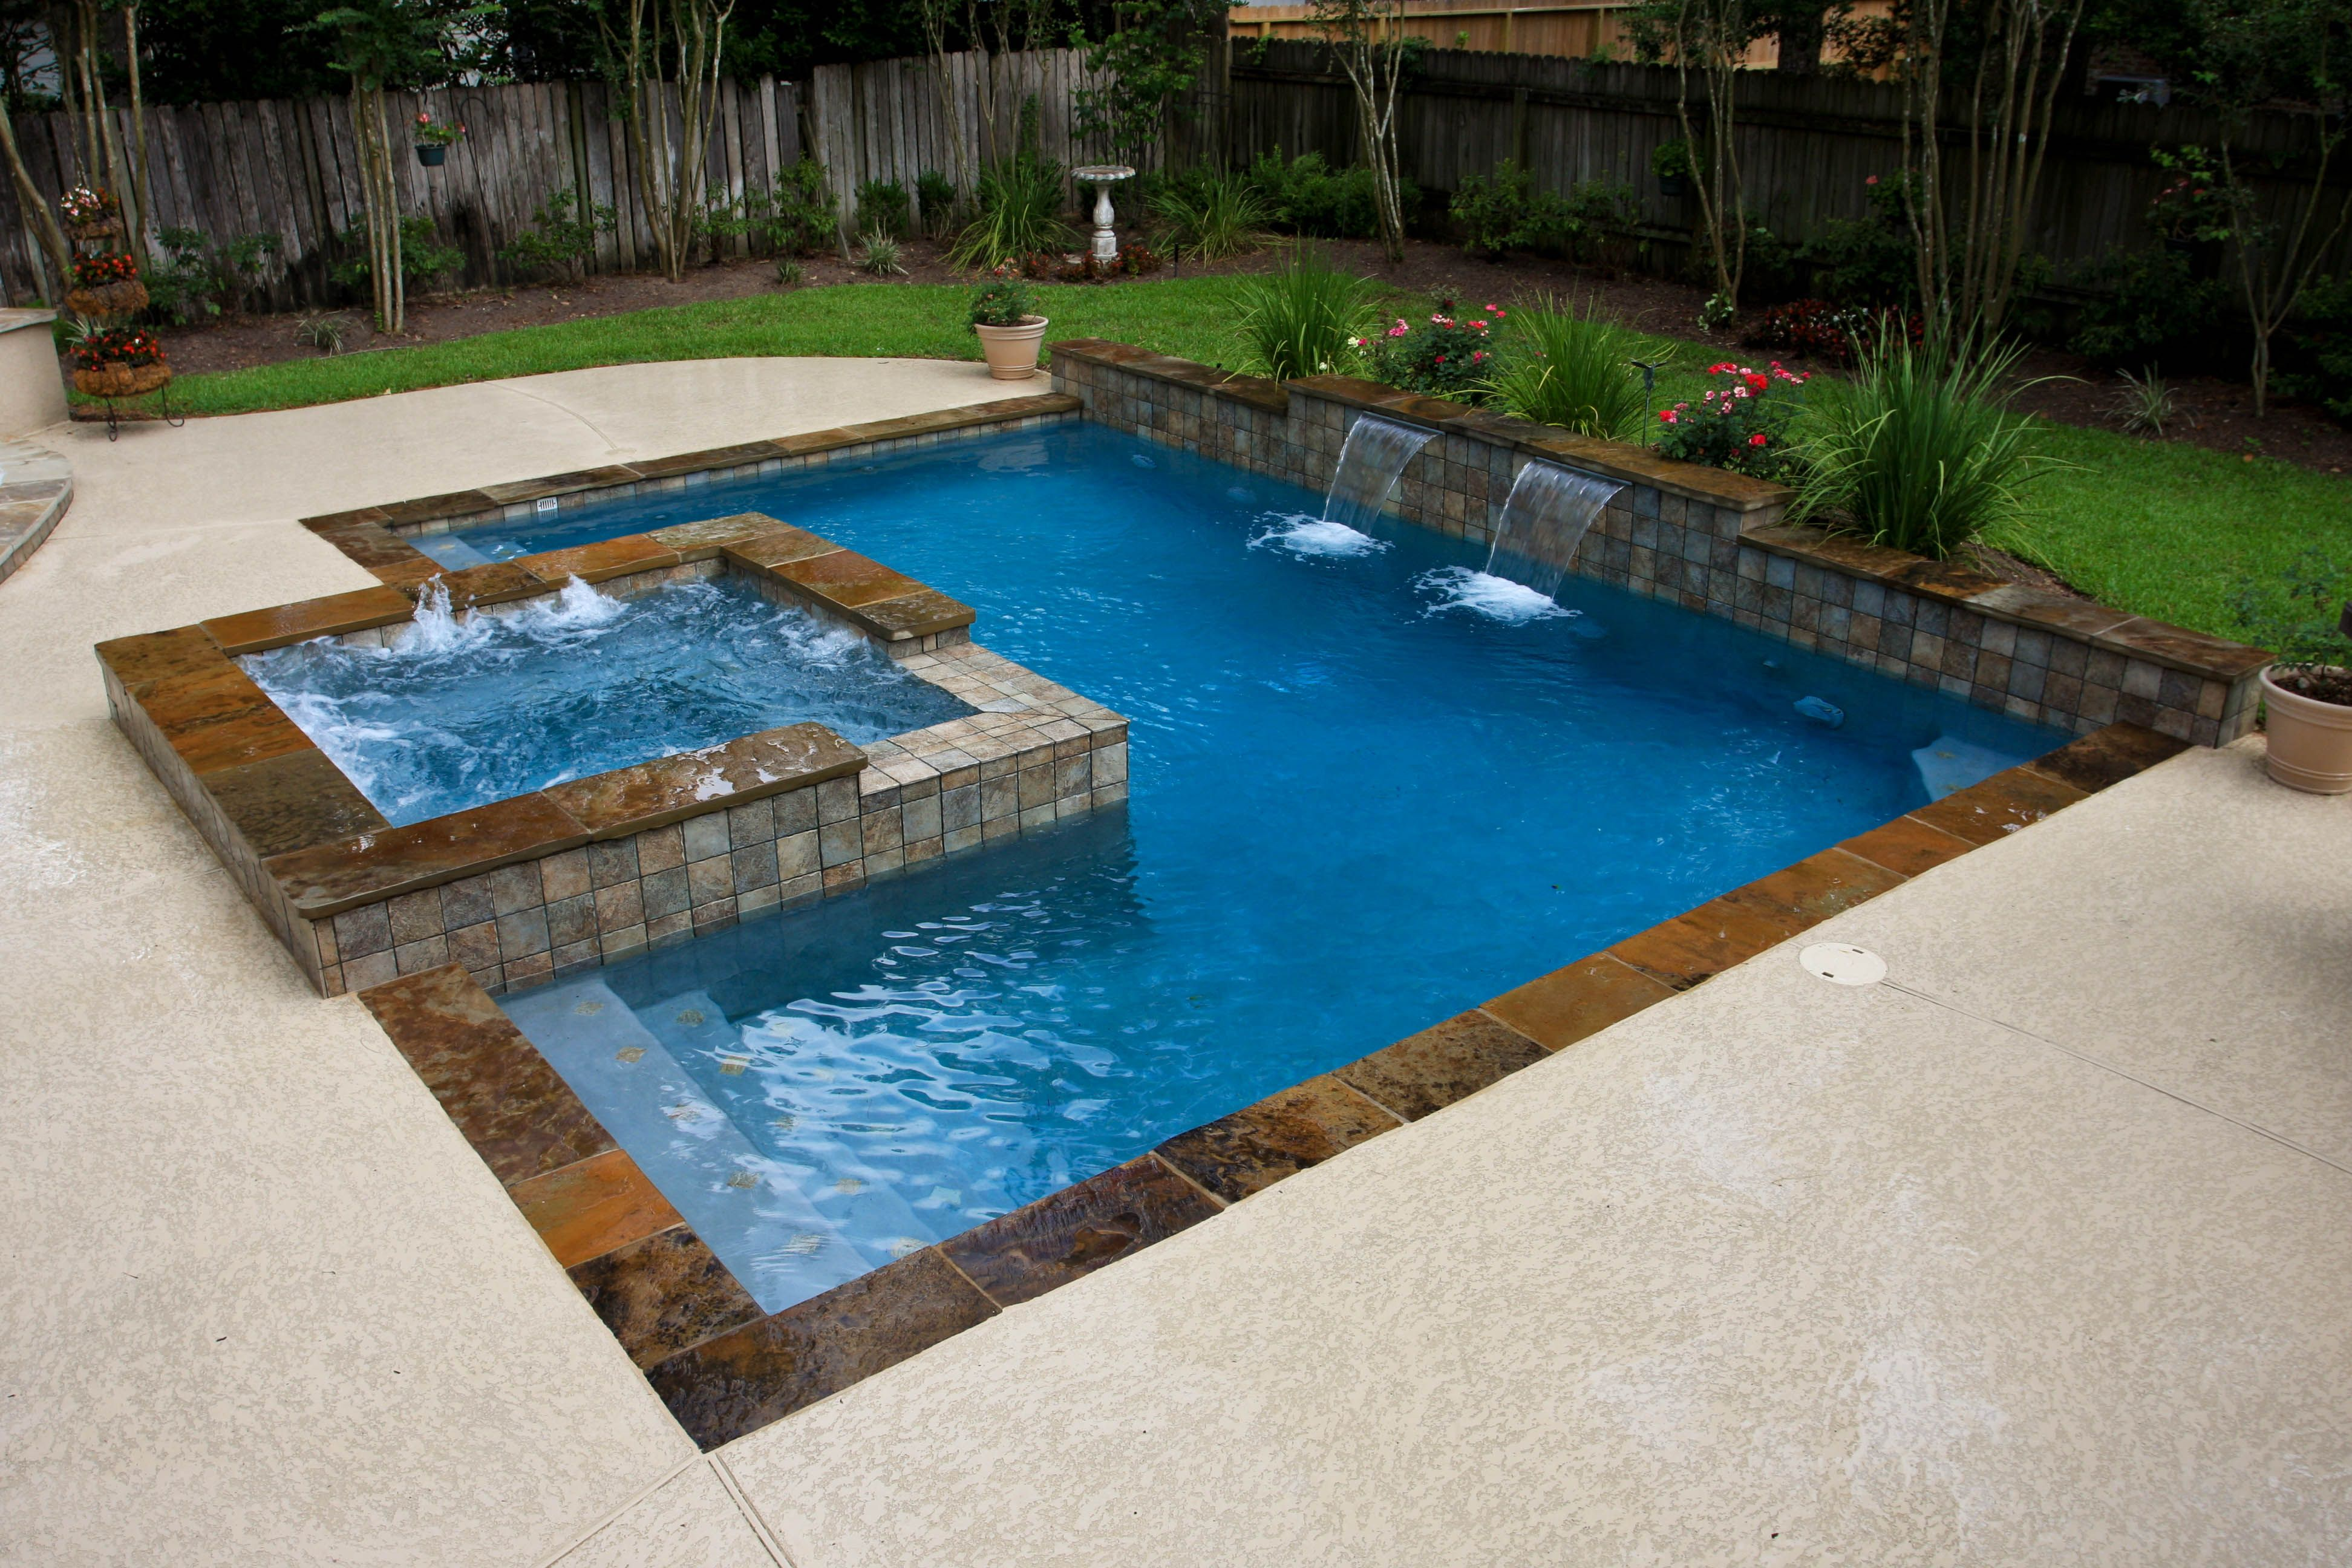 richard's total backyard solutions pool and spa gallery. serving